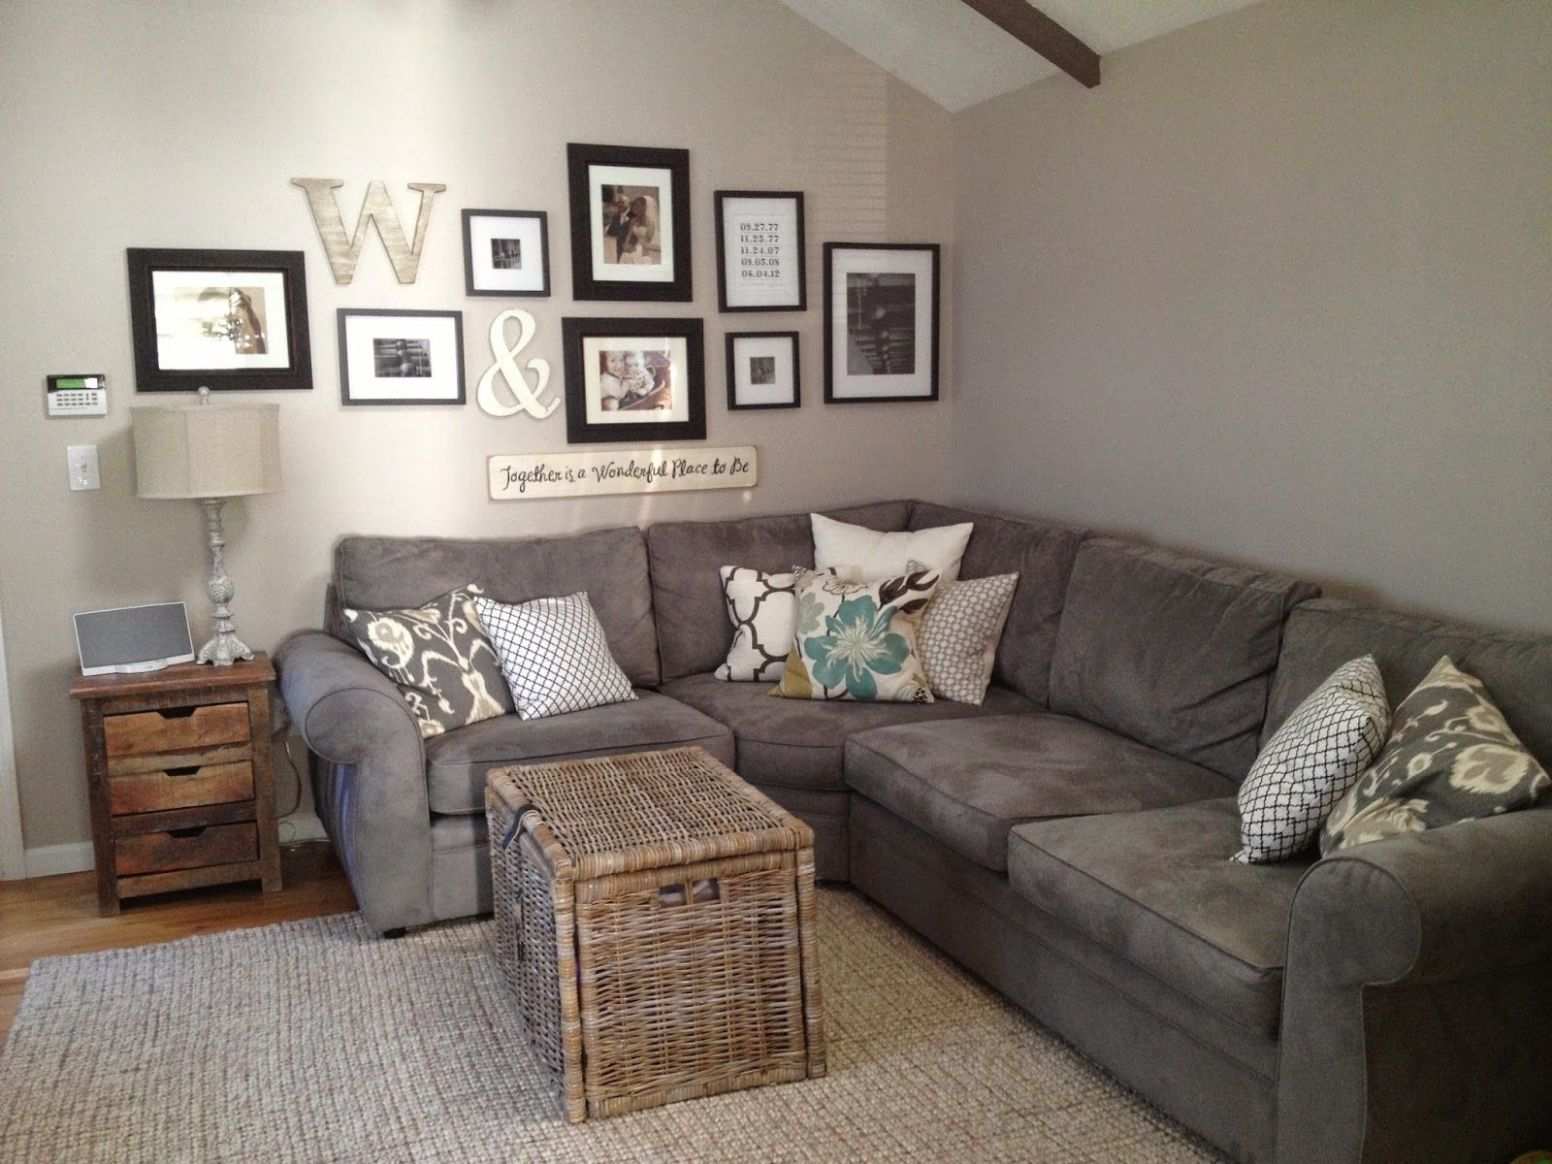 Couch, gallery wall and decor   Living room remodel, Living room ..